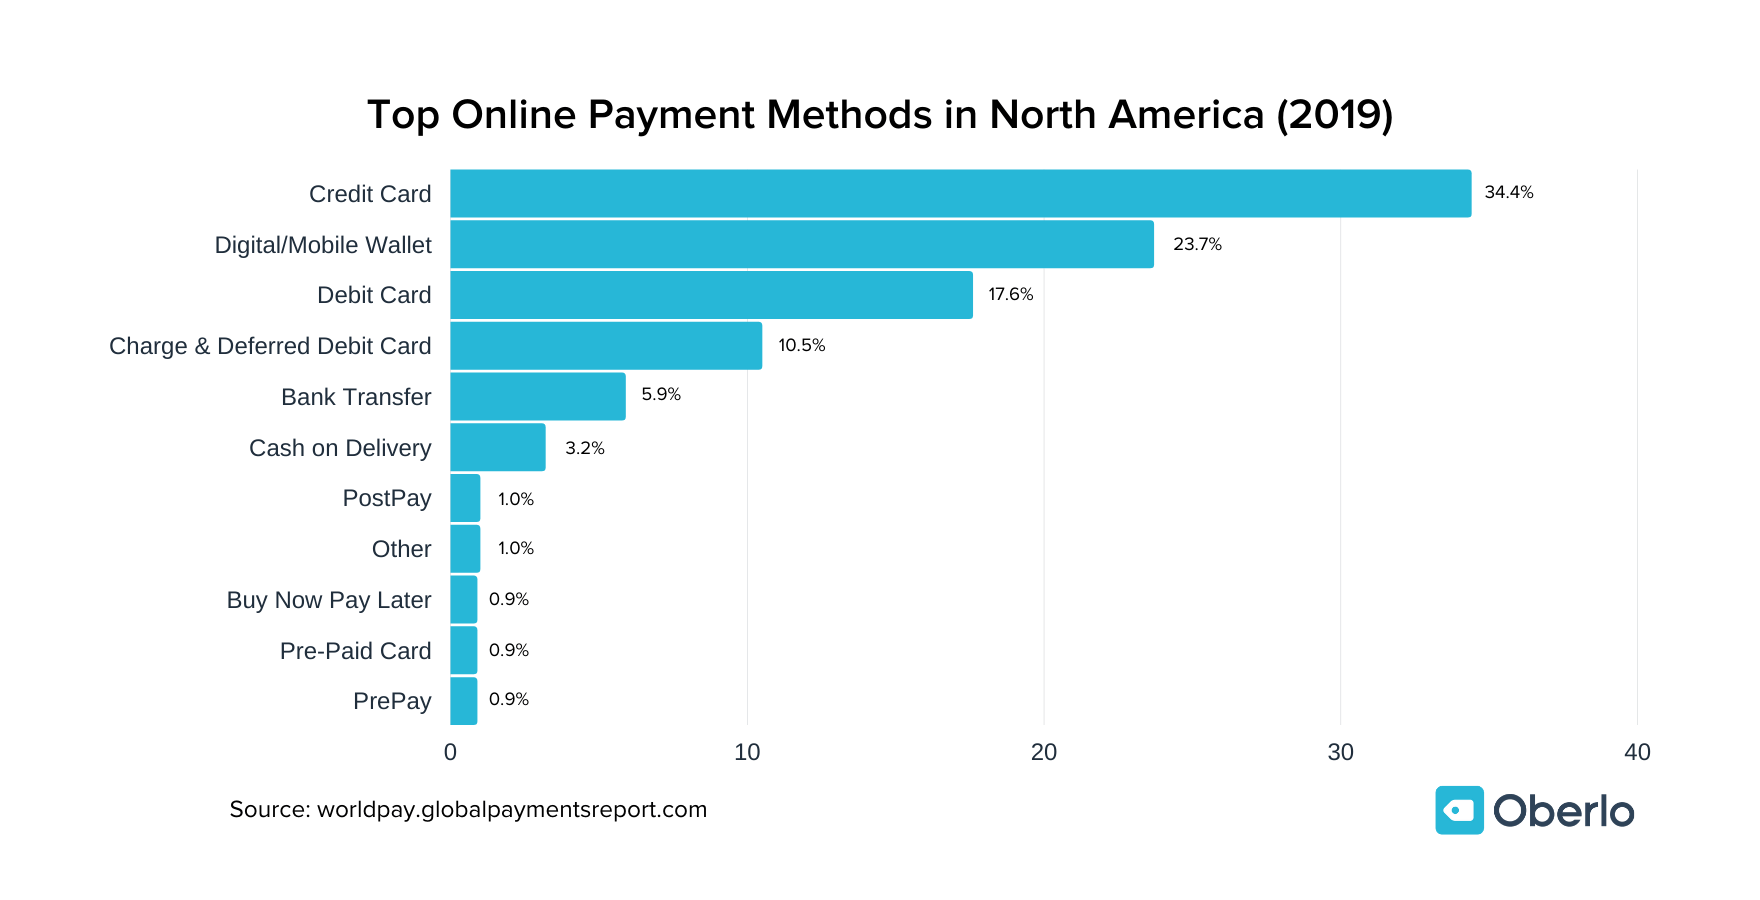 Top Online Payment Methods in North America (2019) chart